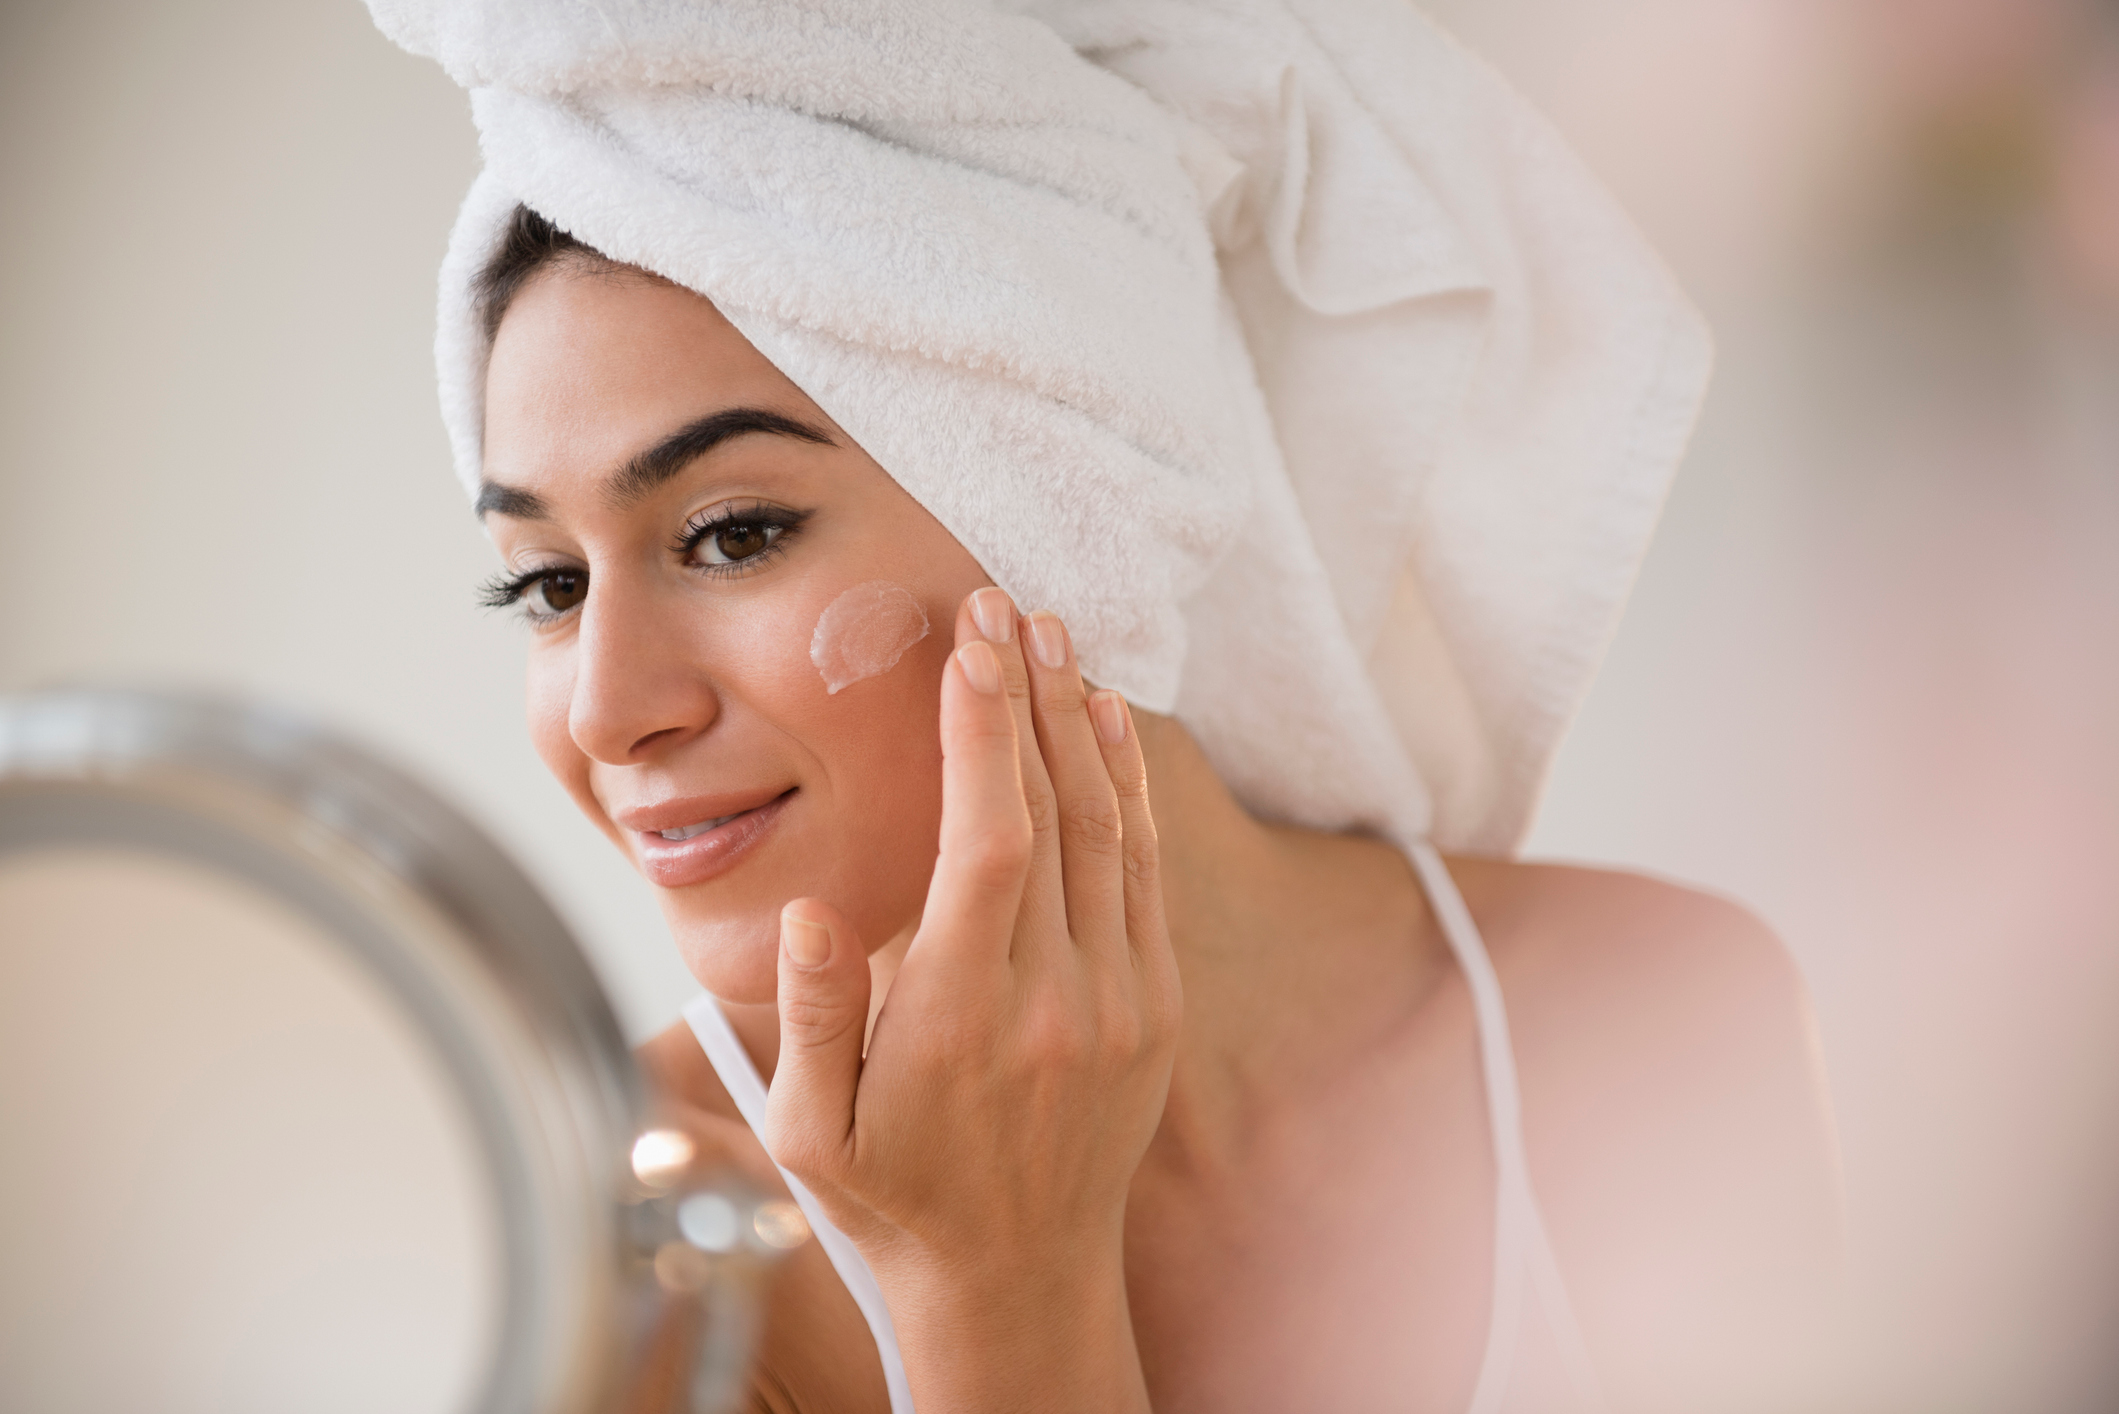 13 Best Tinted Moisturizers in 2019, According to Dermatologists and Makeup Artists